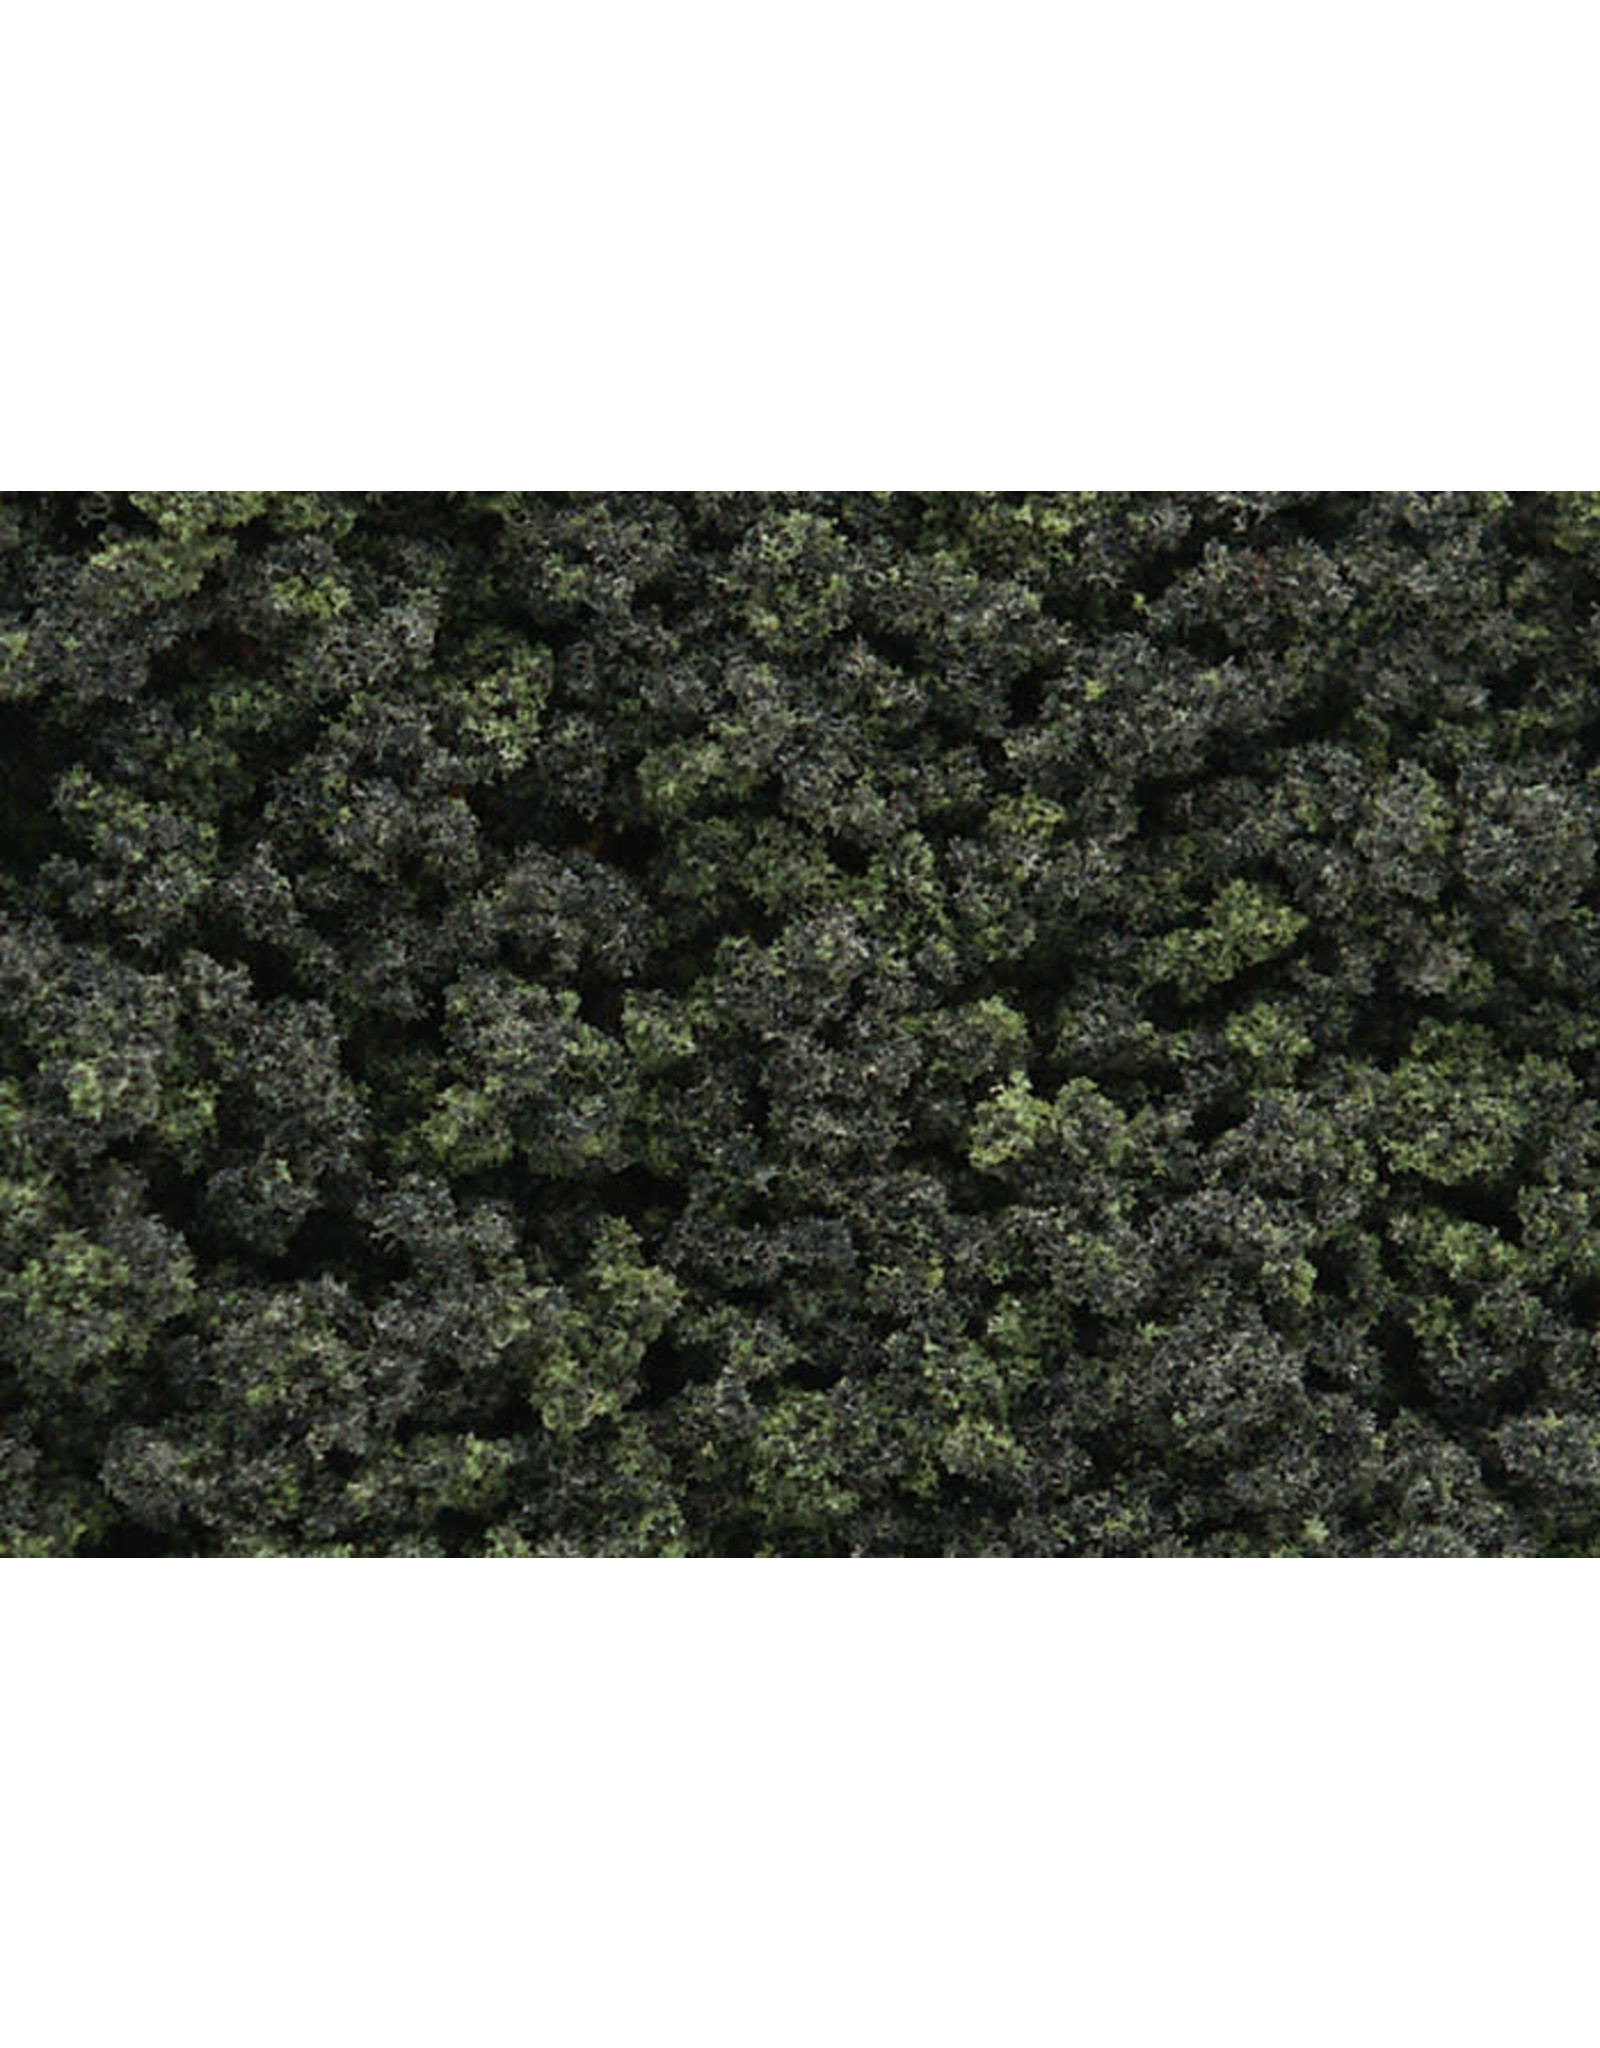 Woodland Scenic Underbrush Forest Blend FC1639